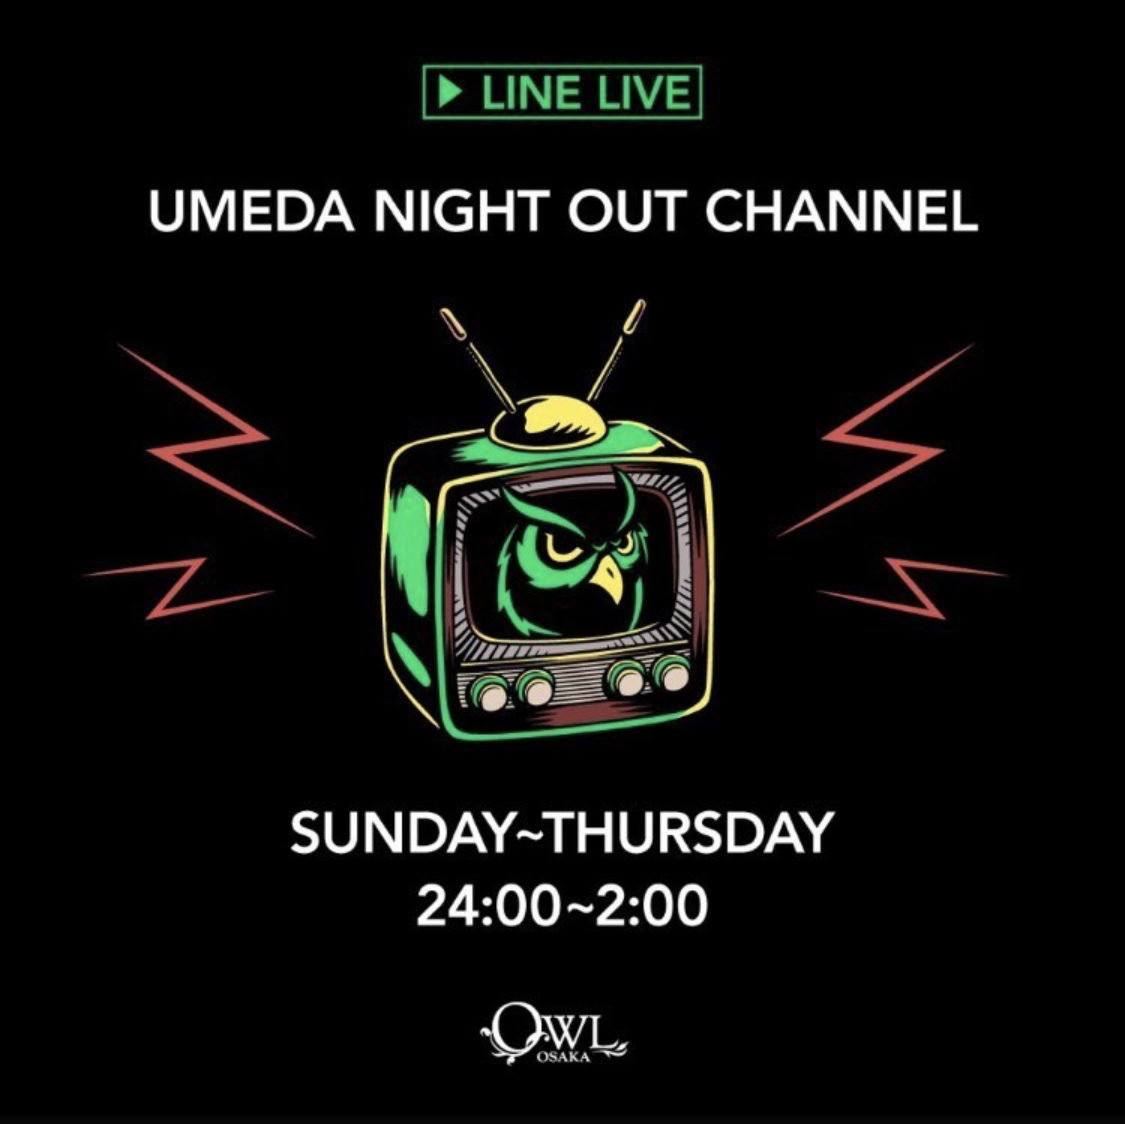 UMEDA NIGHT OUT CHANNEL